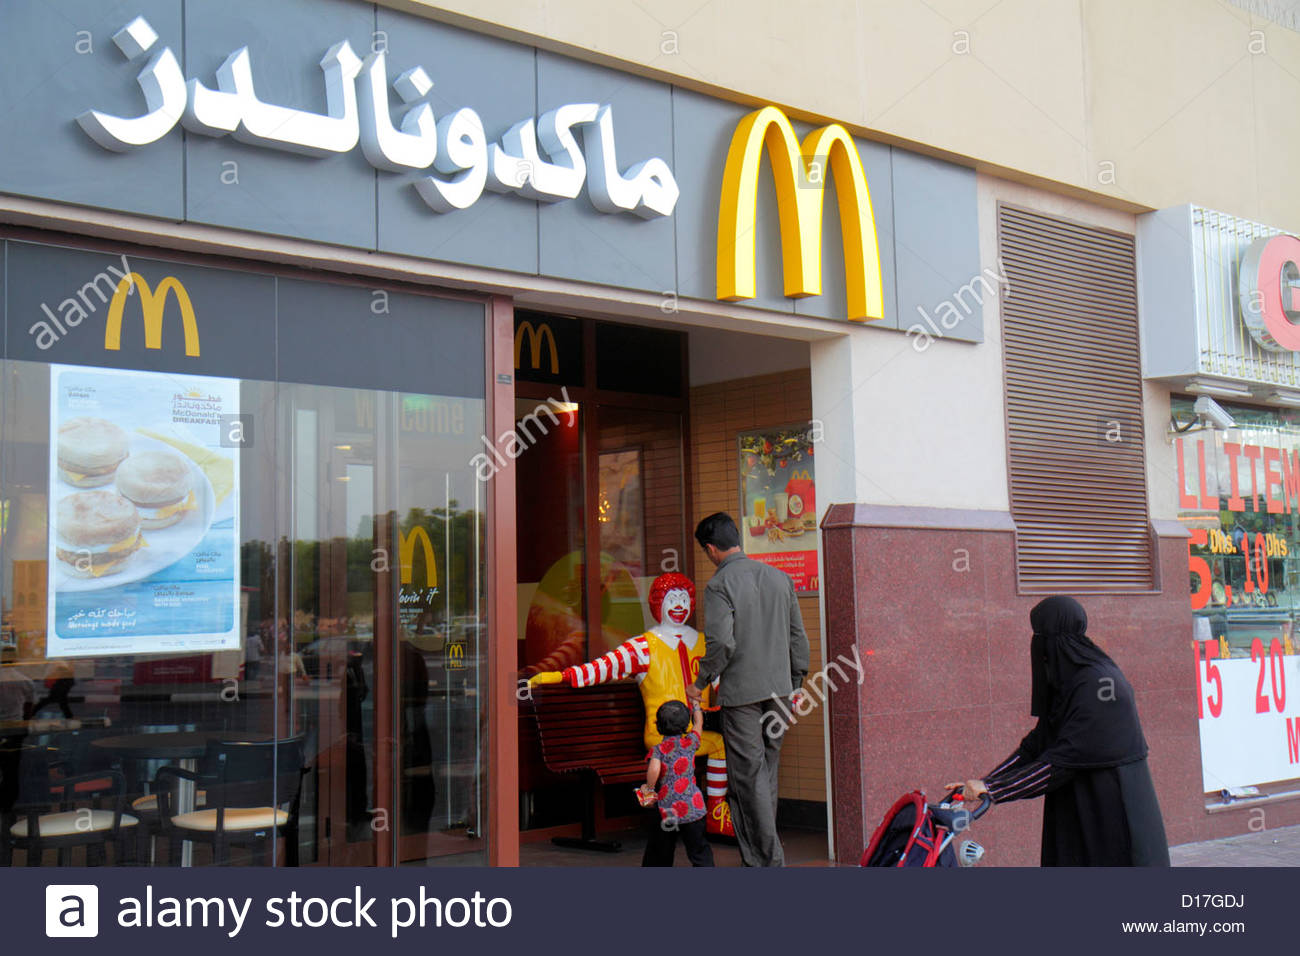 Dubai UAE United Arab Emirates U.A.E. Middle East Al Souqe Al Kabeer Al Ghubaiba Road McDonald's fast food restaurant - Stock Image